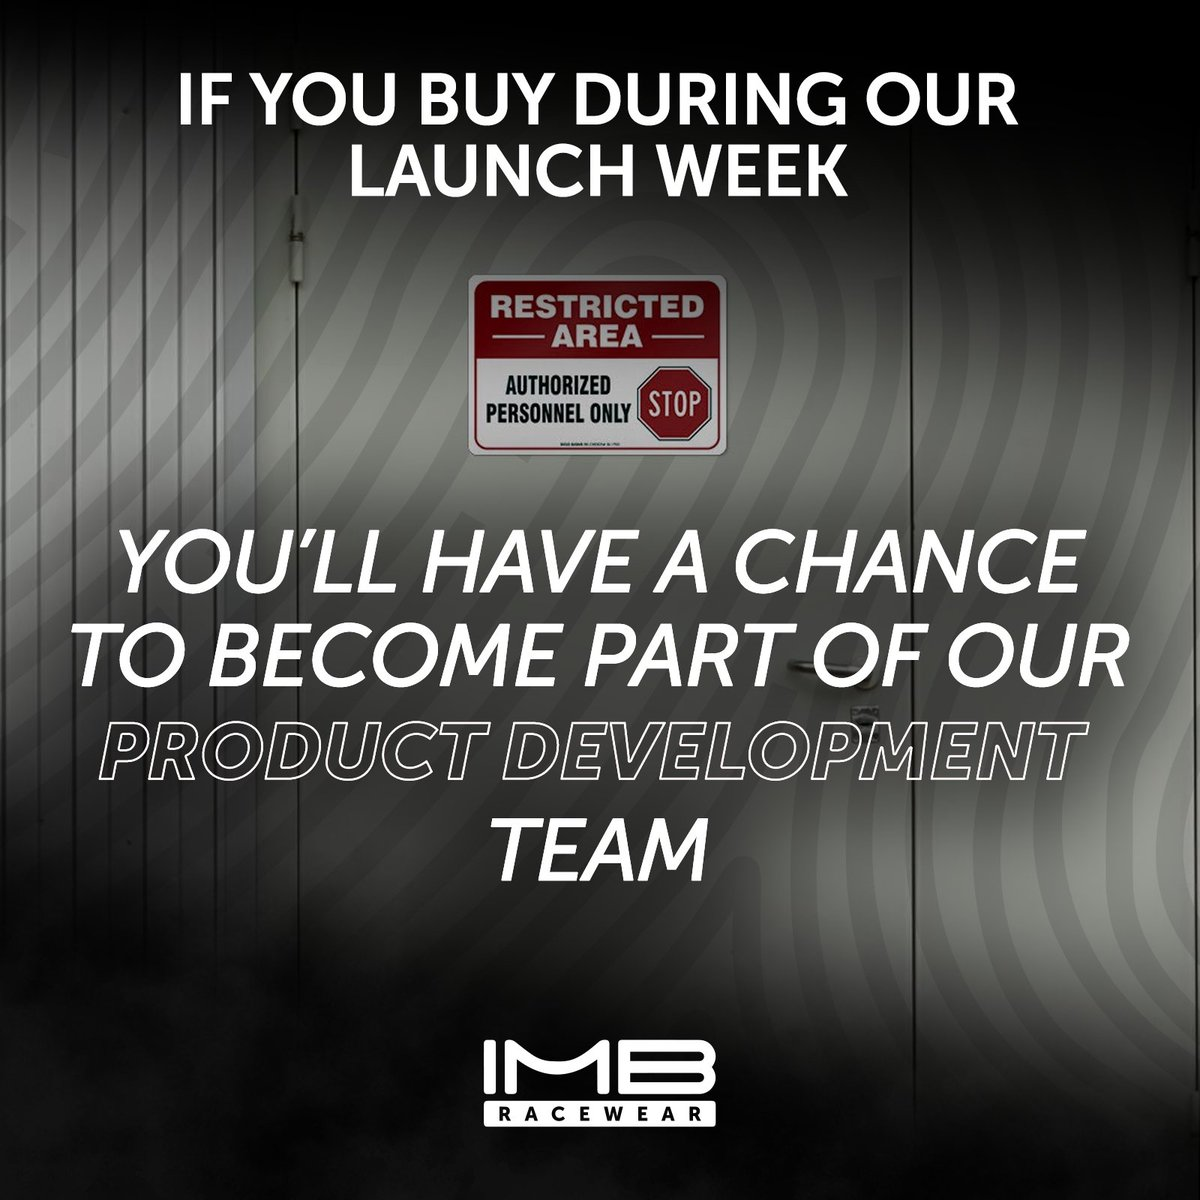 Buy anything from us during our first week (ending midnight, Friday 7th) will get you into our product development closed Discord!  Help us prepare, test, review and give feedback on the latest products for IMB!  @Davey_Cam @AbbiPulling @GPVWC @FSR_esports @isrlesports https://t.co/hWF9aUJDtl